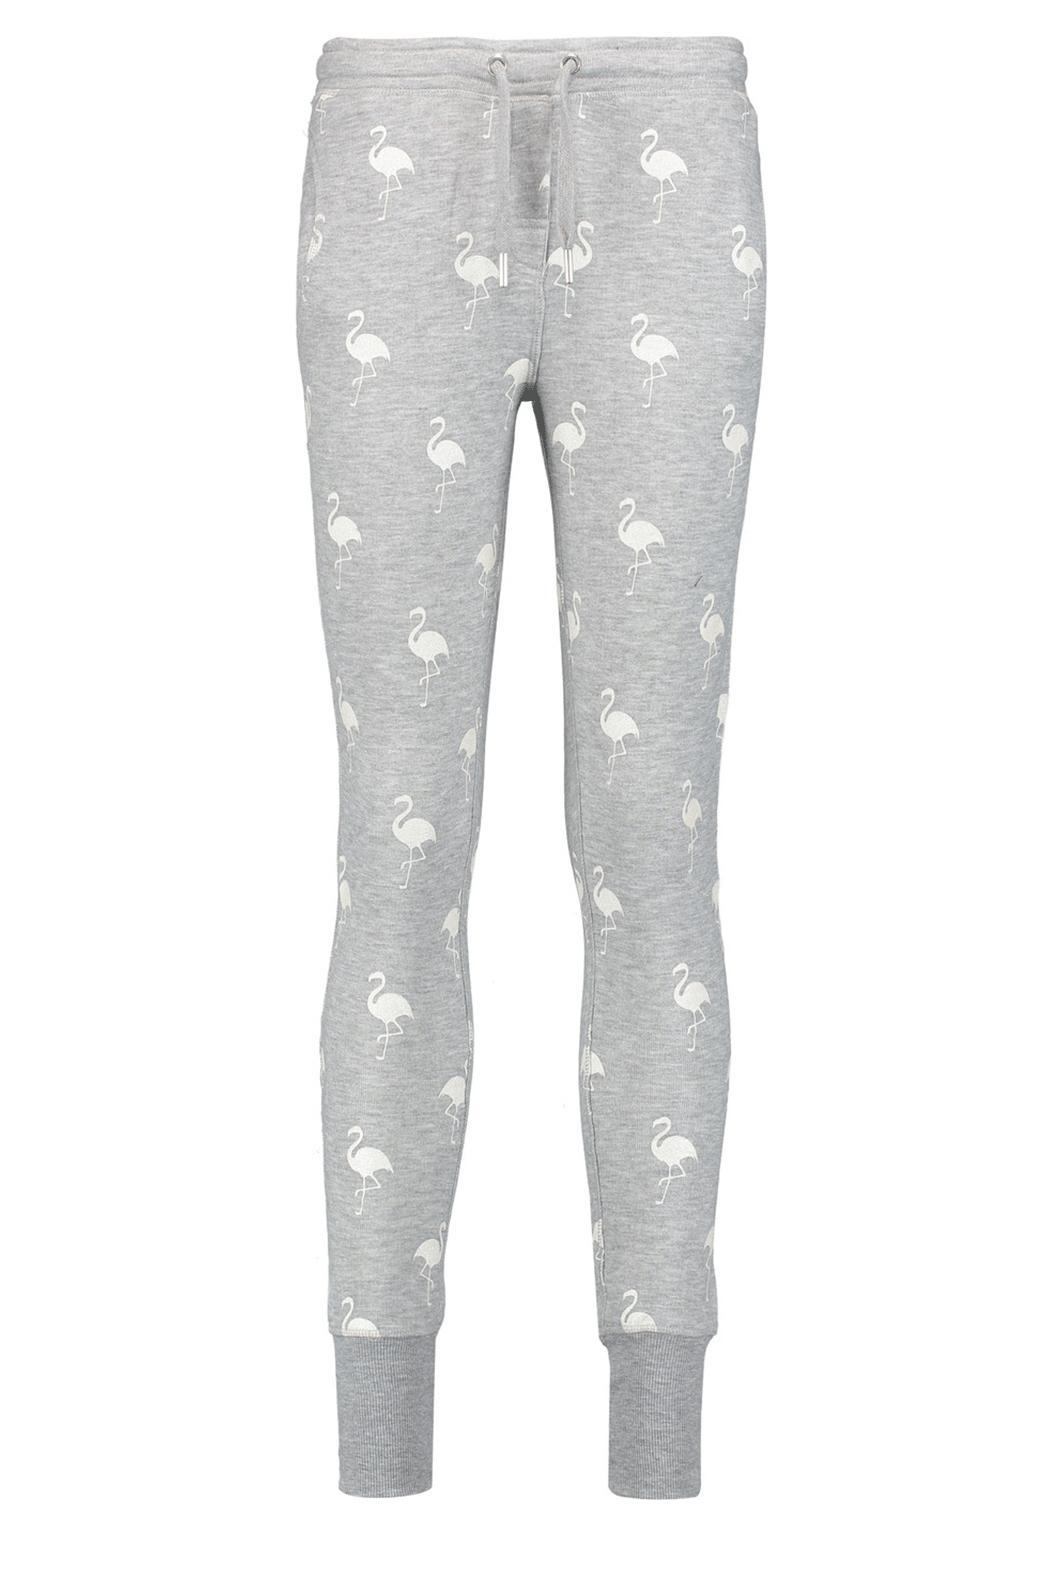 Zoe Karssen Flamingo Grey Pants - Main Image